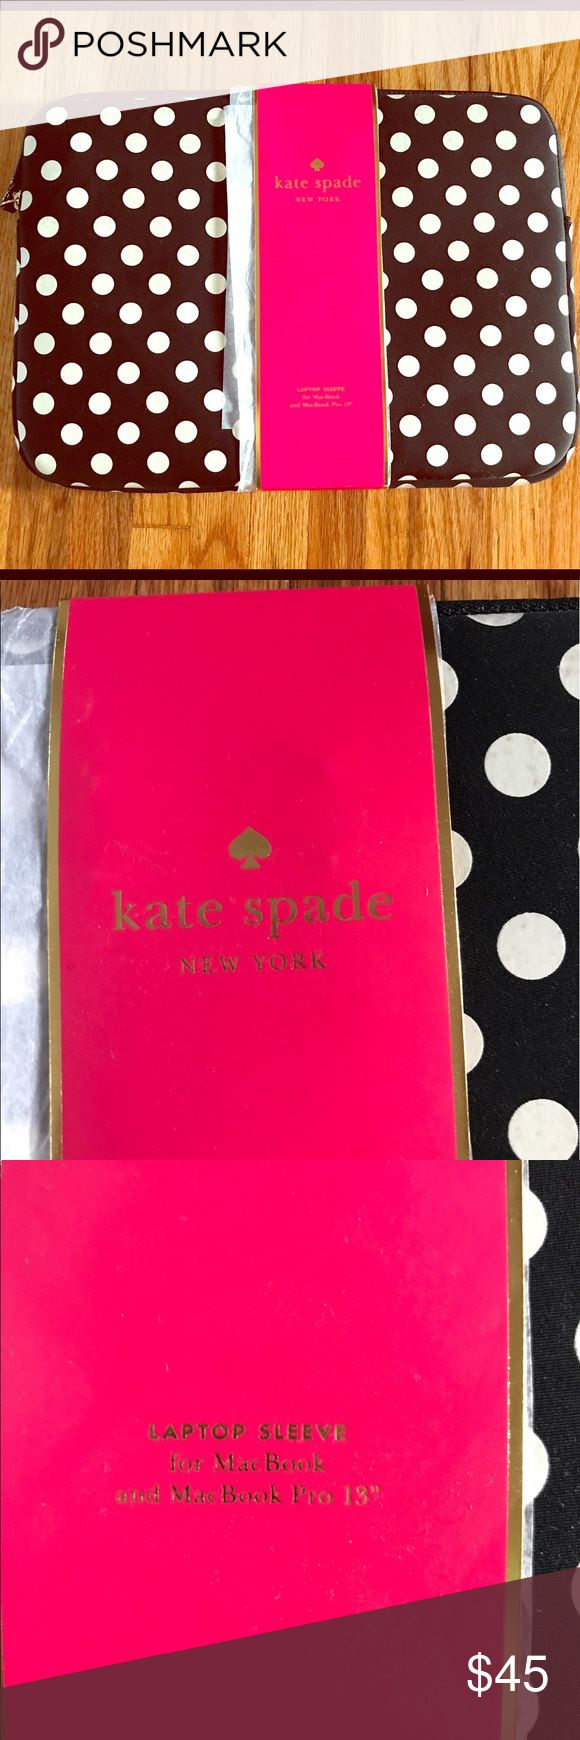 Kate Spade laptop sleeve Brand new and super cute! Black with white polka dots, red interior. Neoprene laptop sleeve for Mac Book and Mac Book Pro. kate spade Accessories Laptop Cases